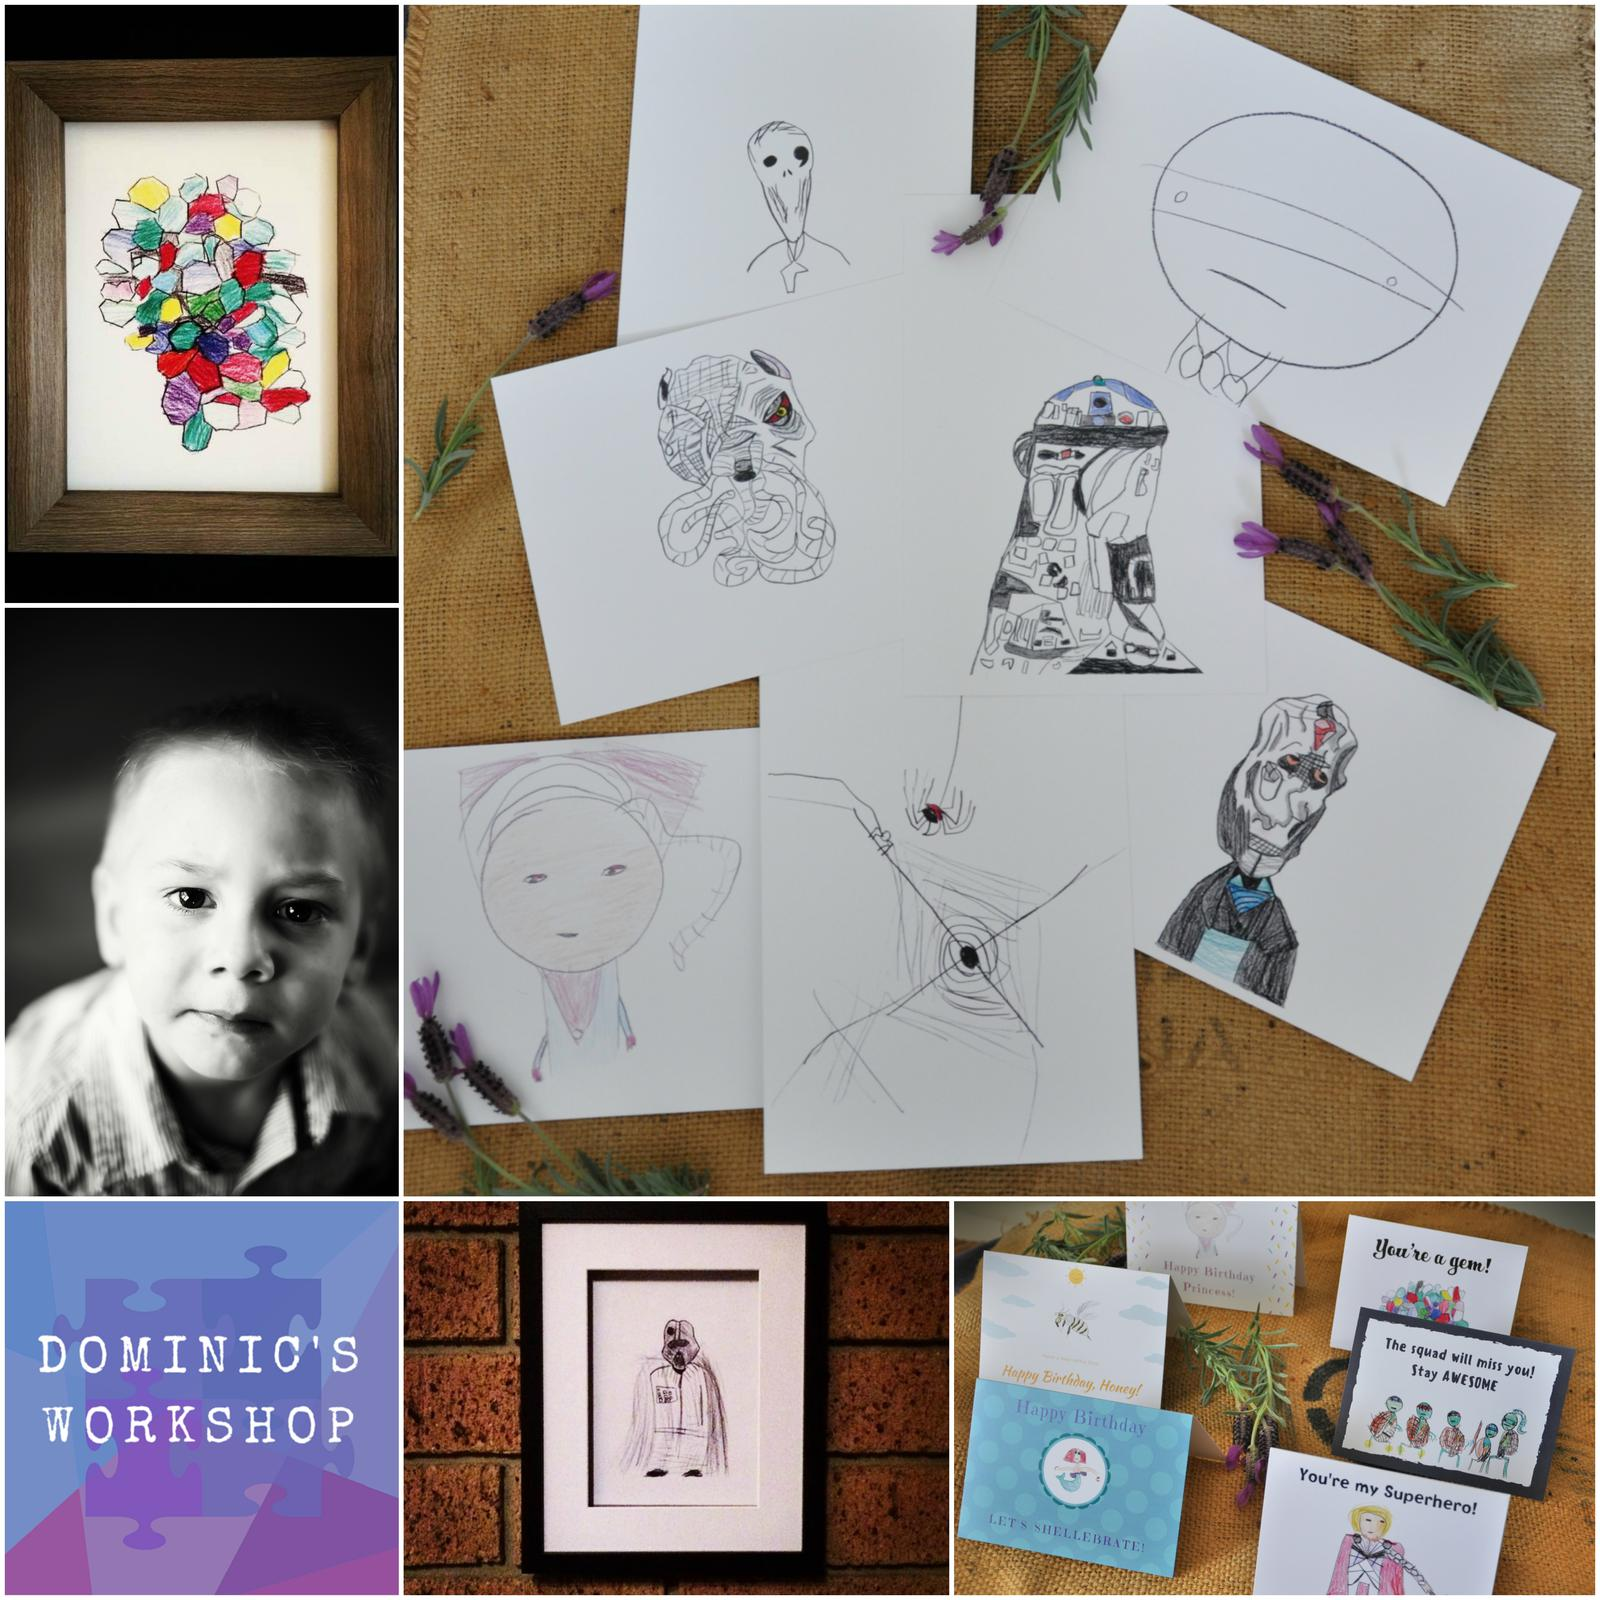 Dominic's Workshop collage